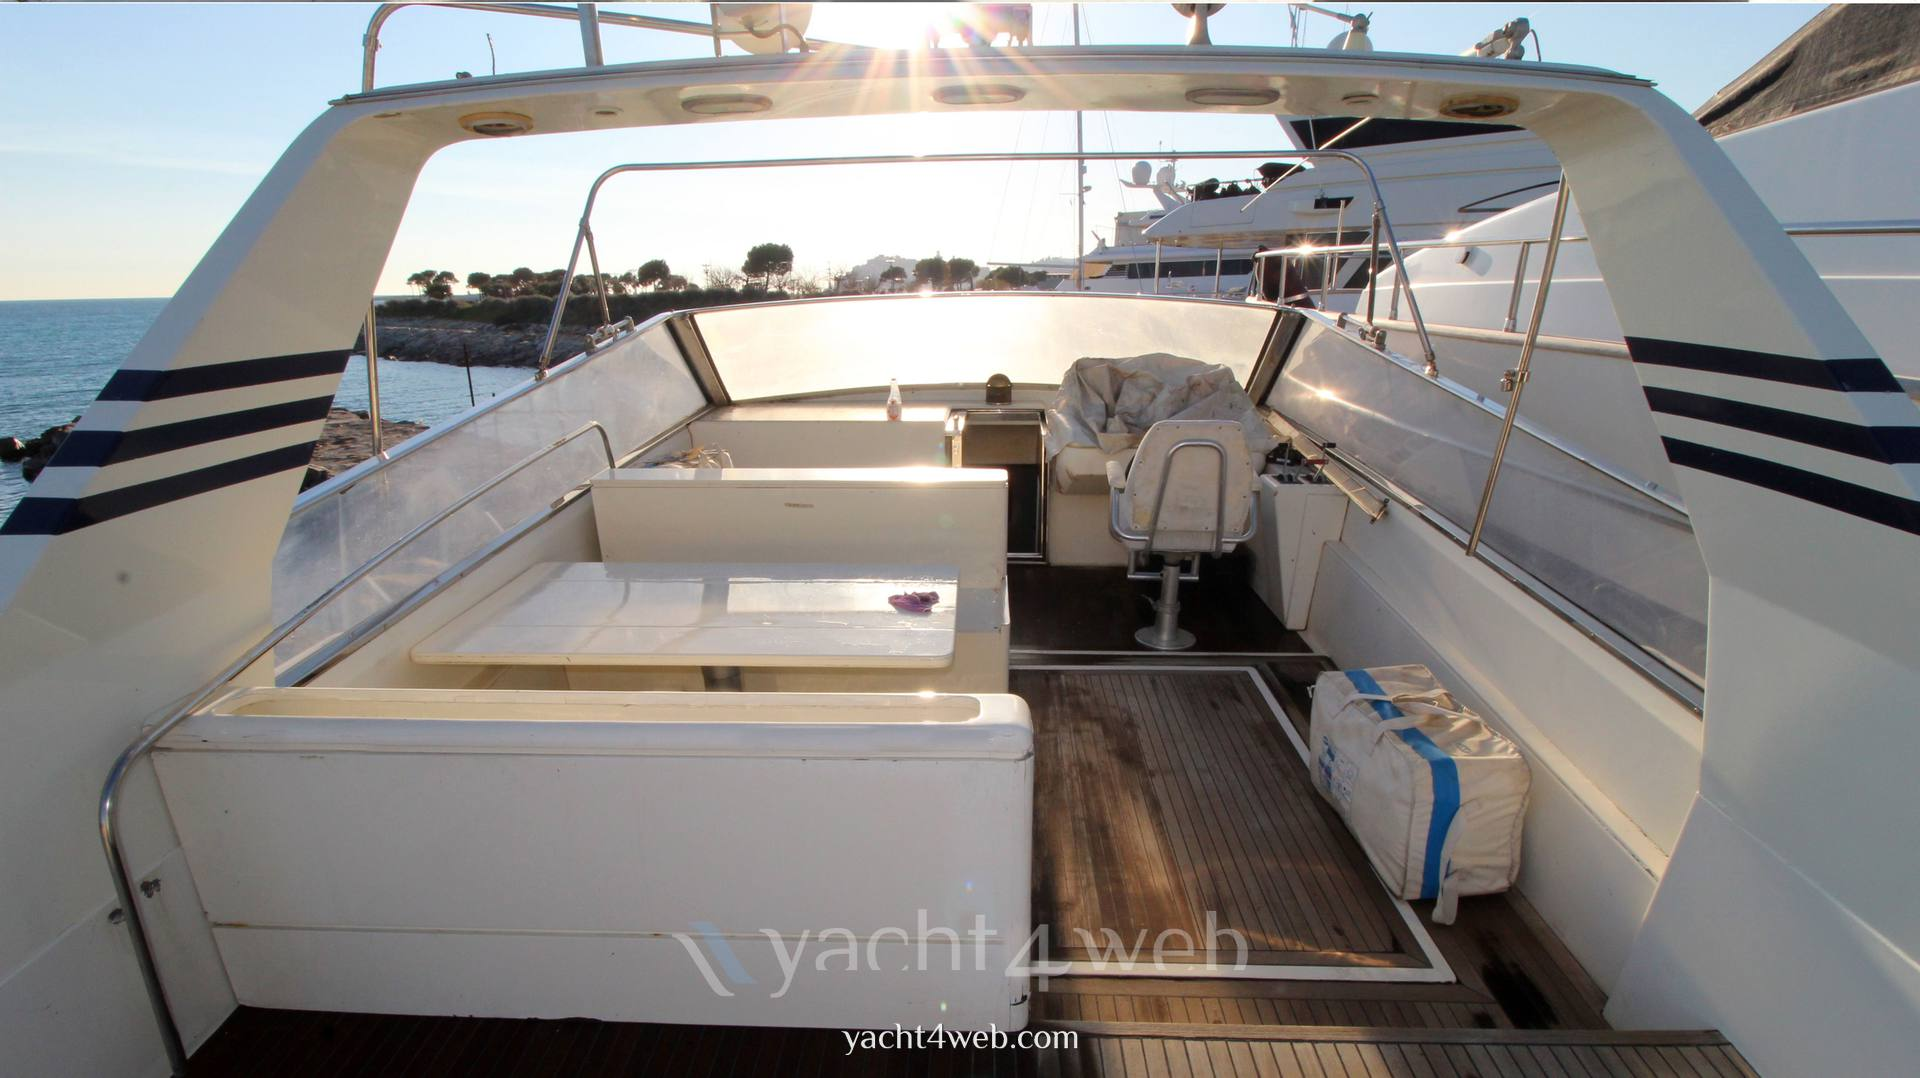 Dual Craft 56 open Motor boat used for sale